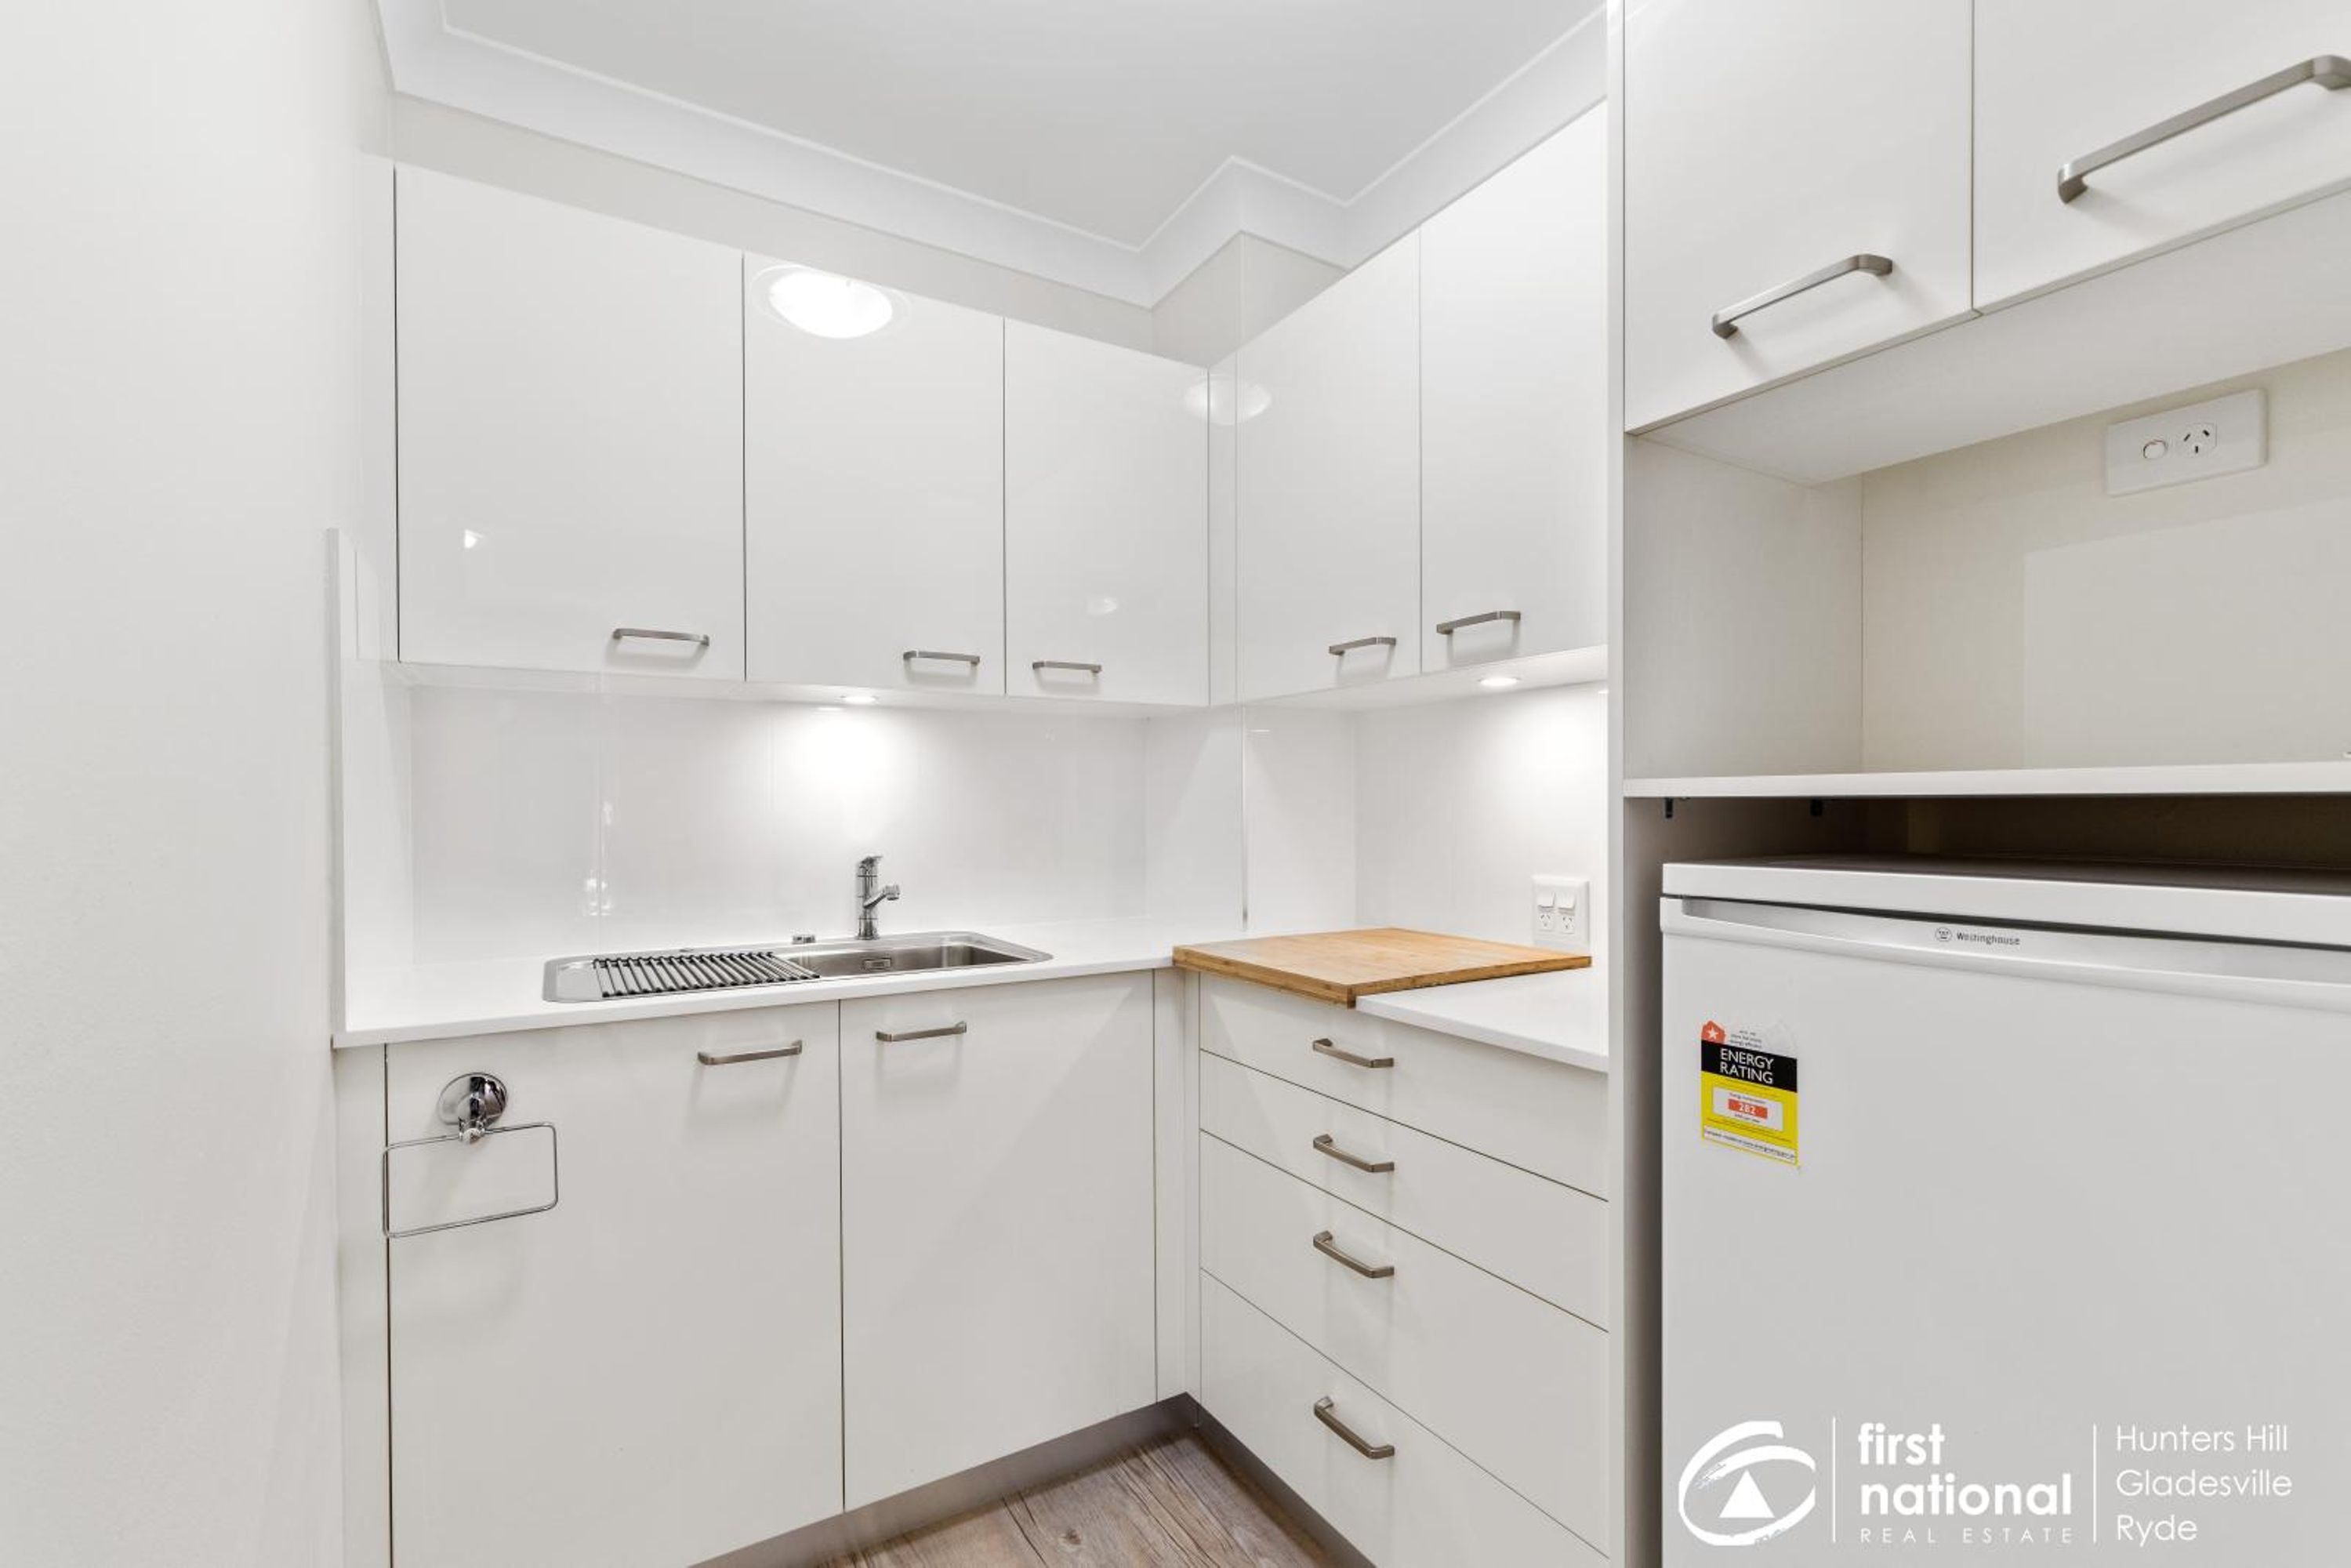 4/43 Gladesville Road, Hunters Hill, NSW 2110